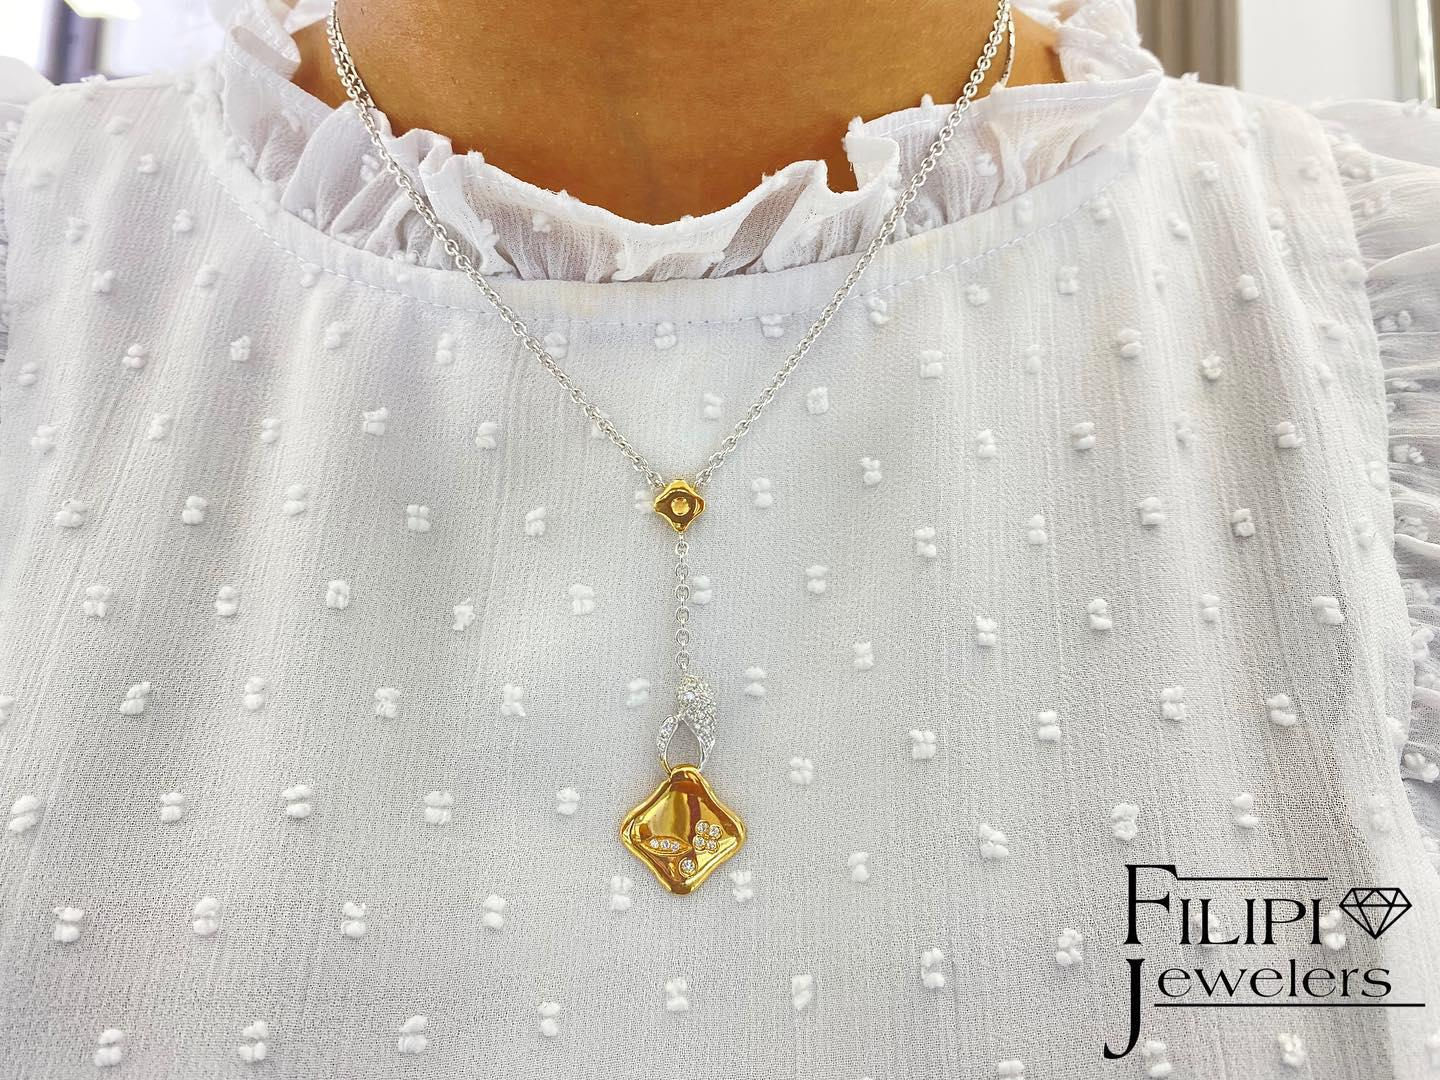 Filipi Jewelers of Coral Springs